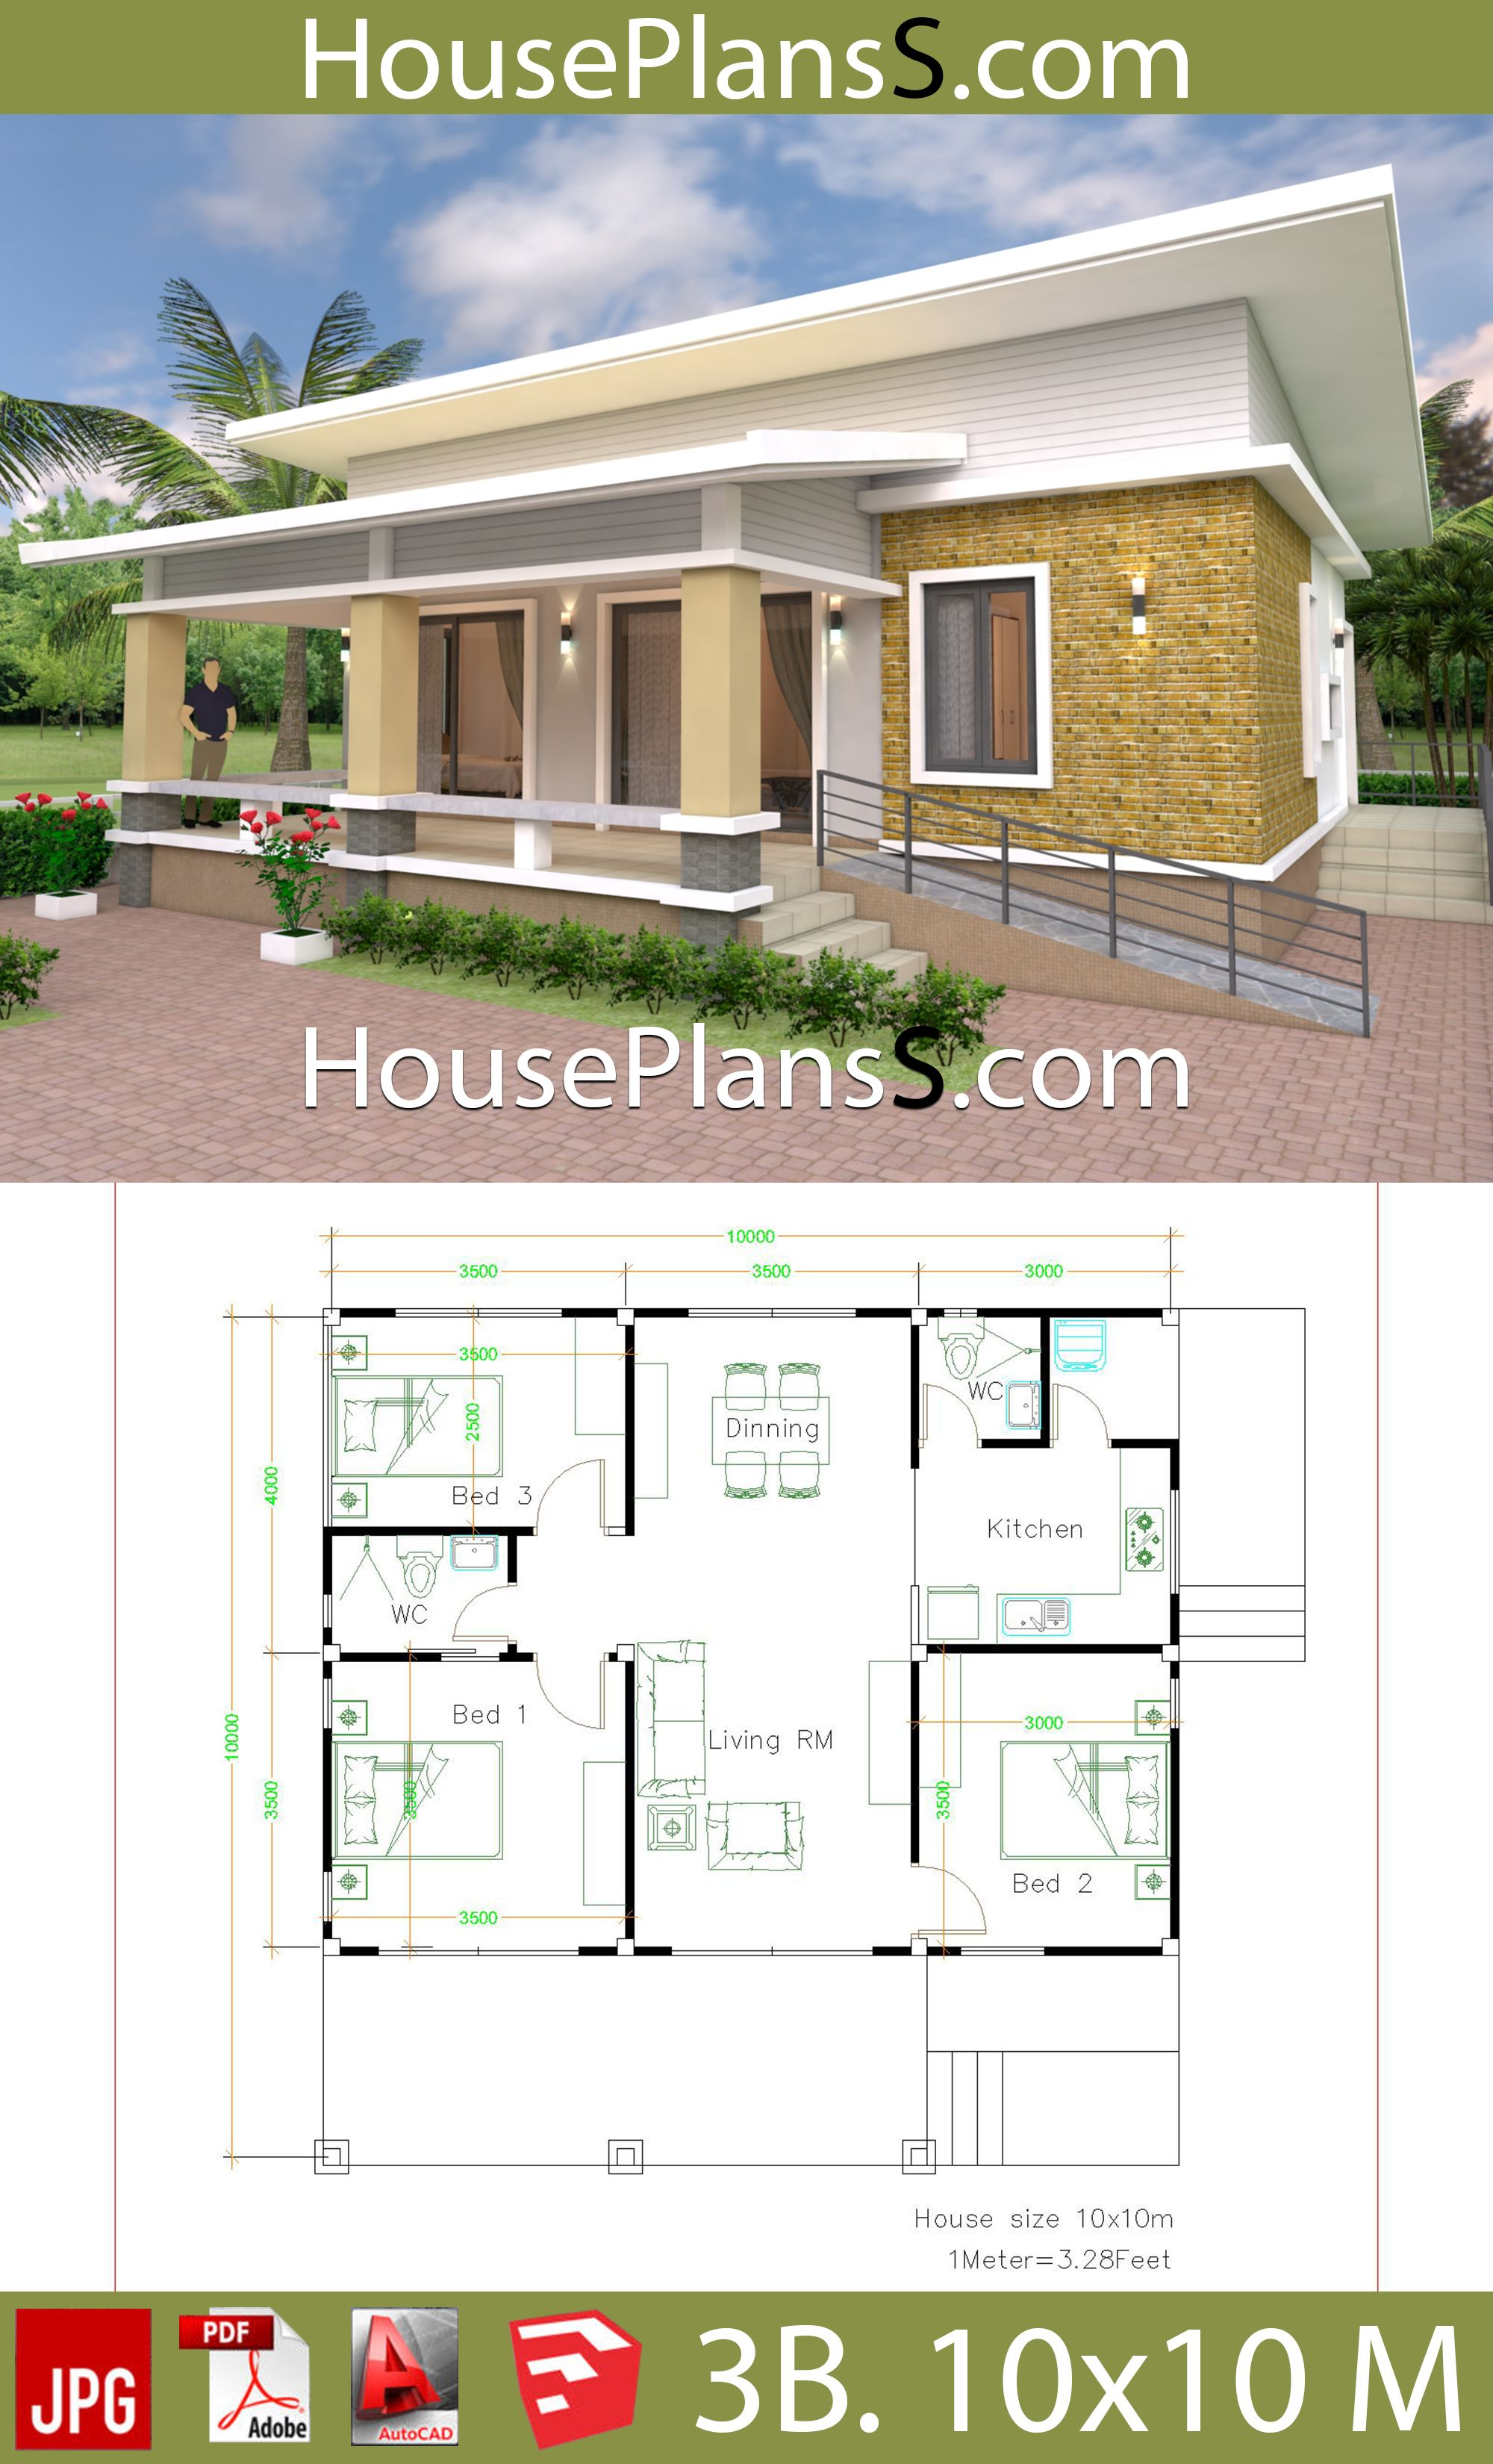 10x10 Living Room Design: House Design Plans 10×10 With 3 Bedrooms Full Interior